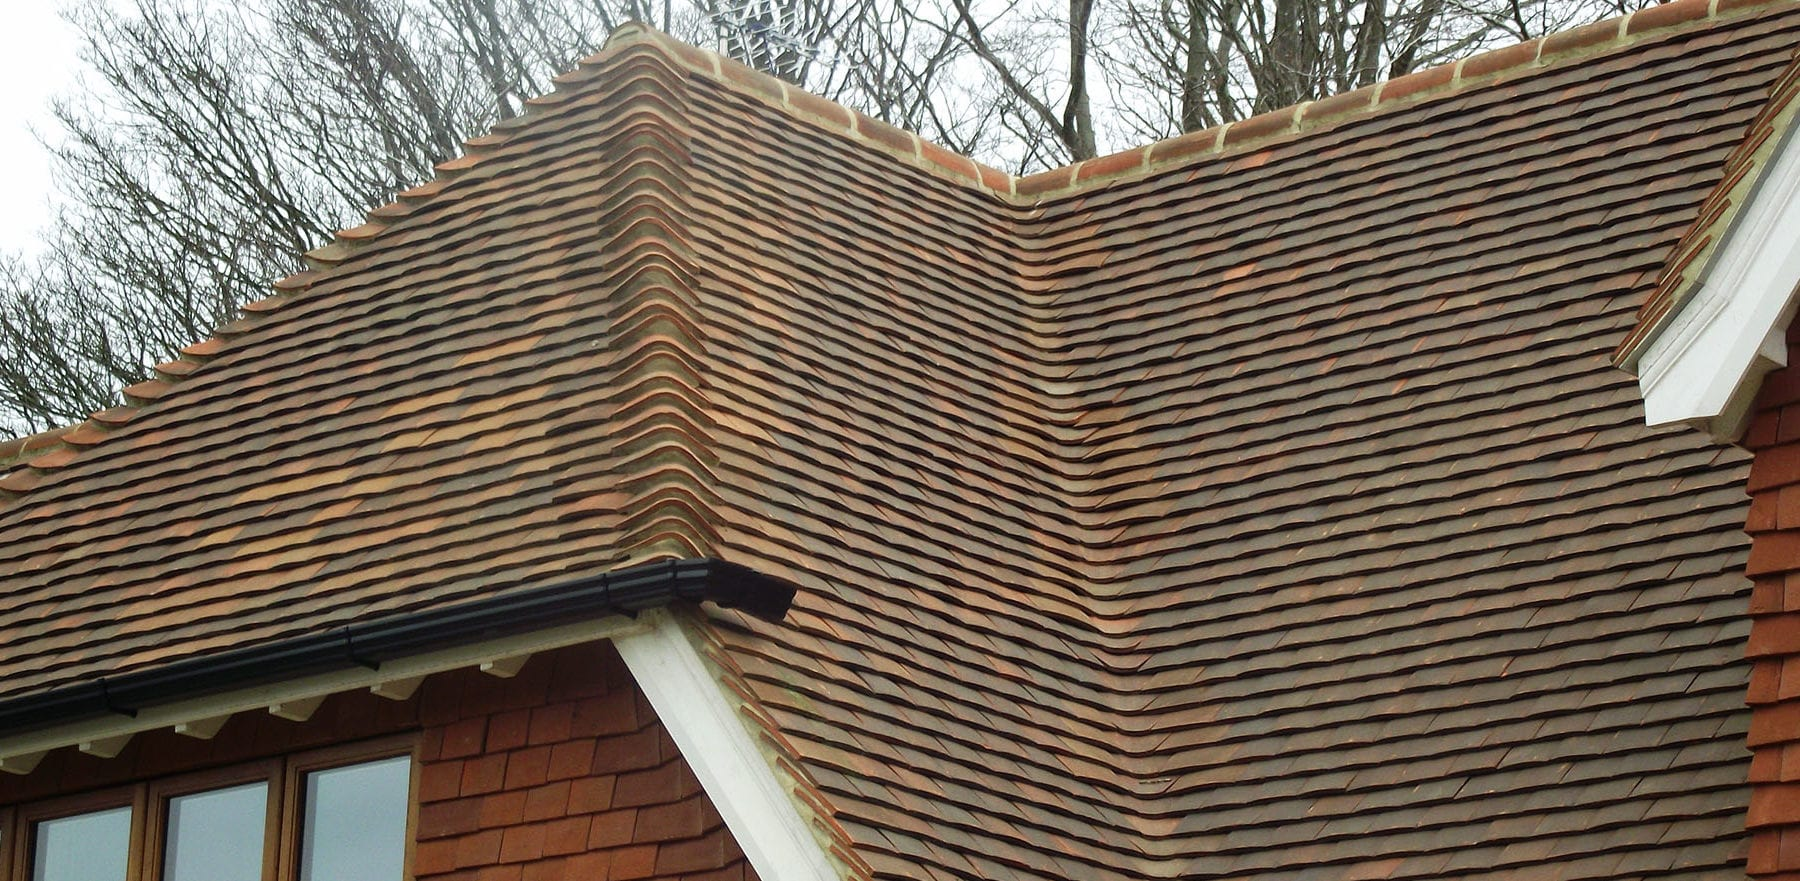 Lifestiles - Handcrafted Autumn Clay Roof Tiles - Sussex, England 4